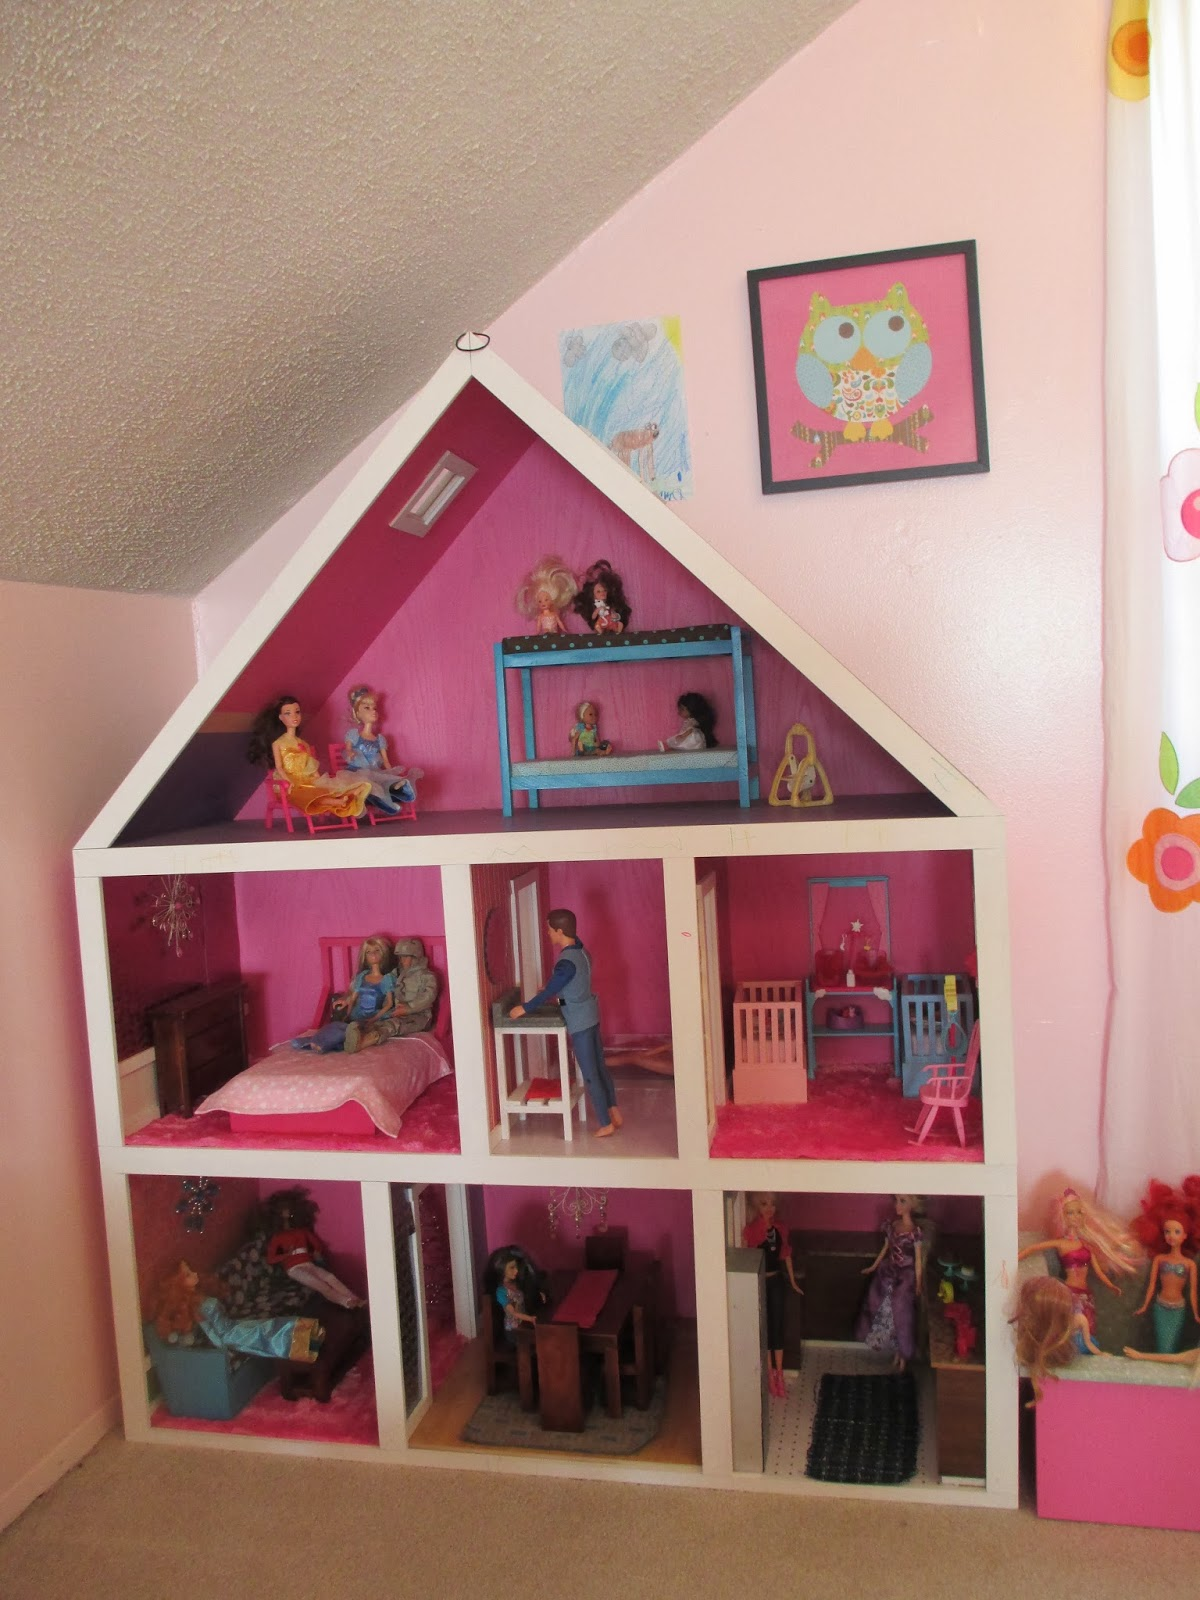 Make Your Own Barbie Furniture Property Impressive Kruse's Workshop Building For Barbie On A Budget Inspiration